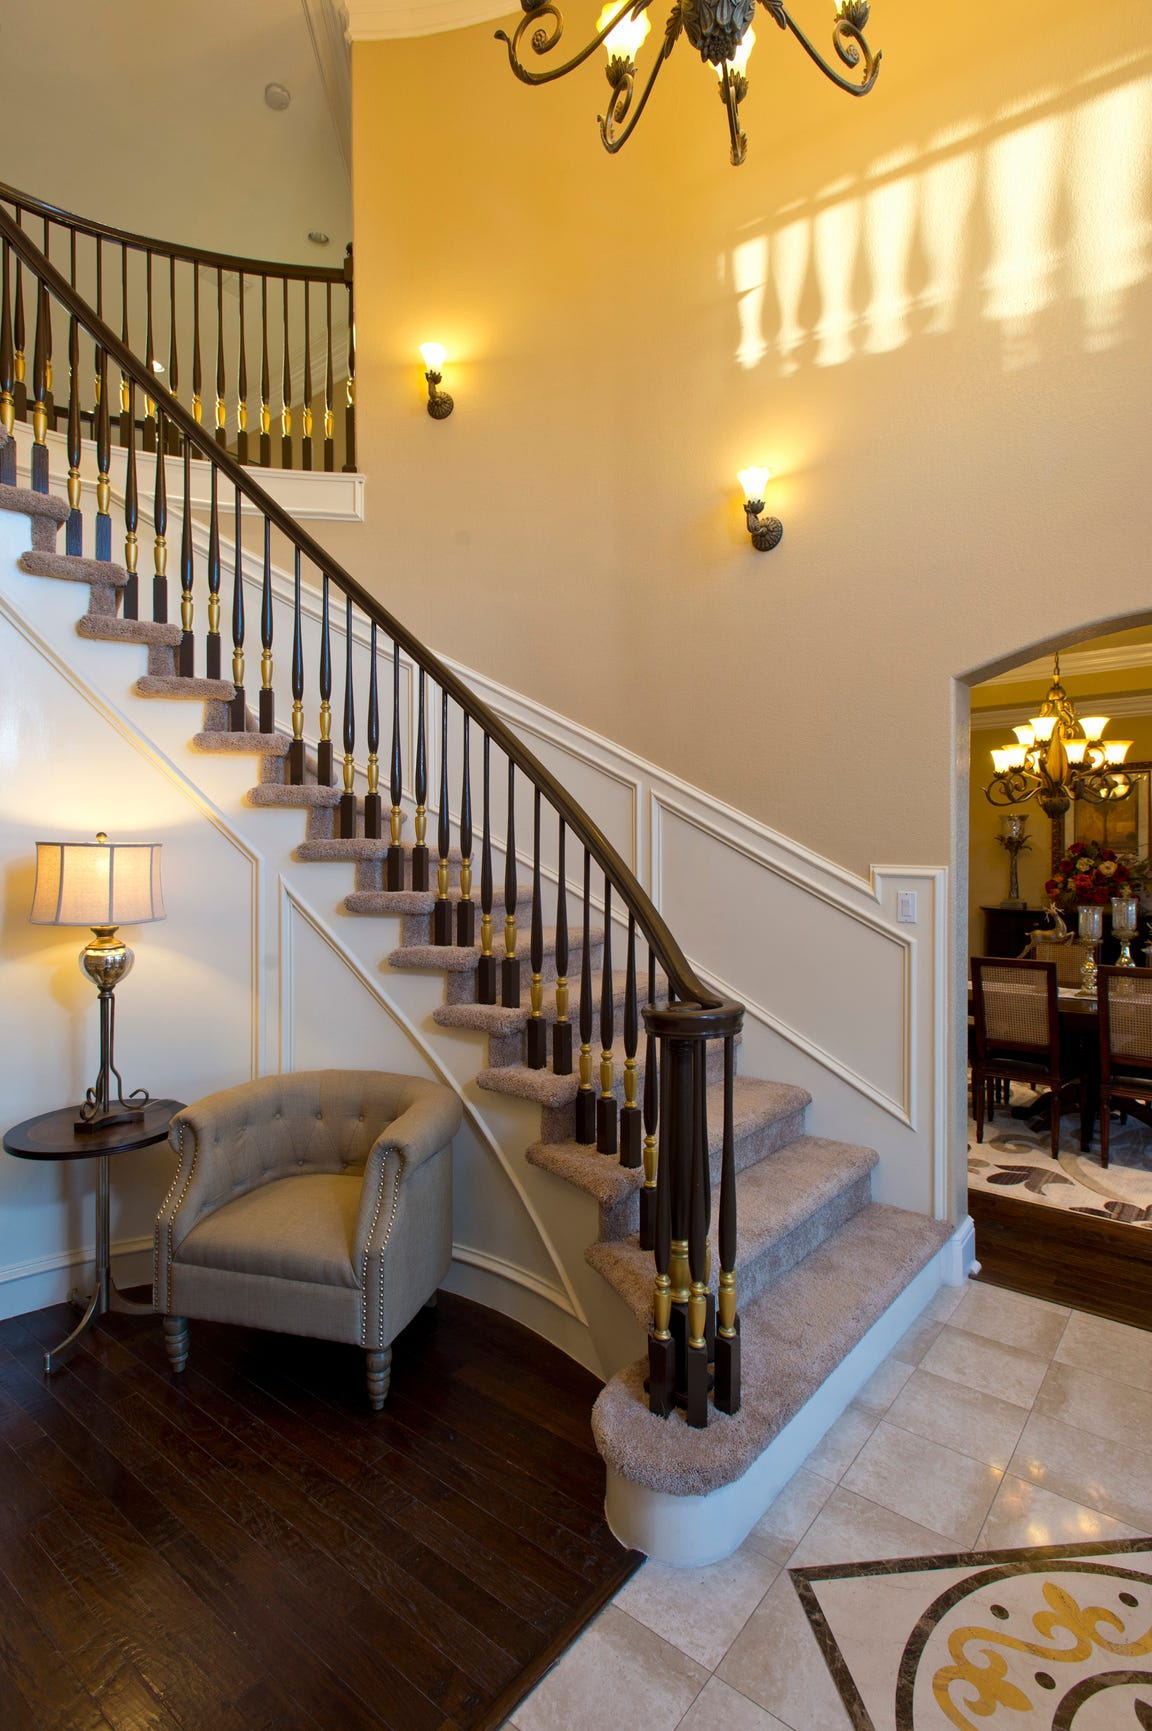 A beautiful curved staircase takes center stage in the entry foyer of the home.